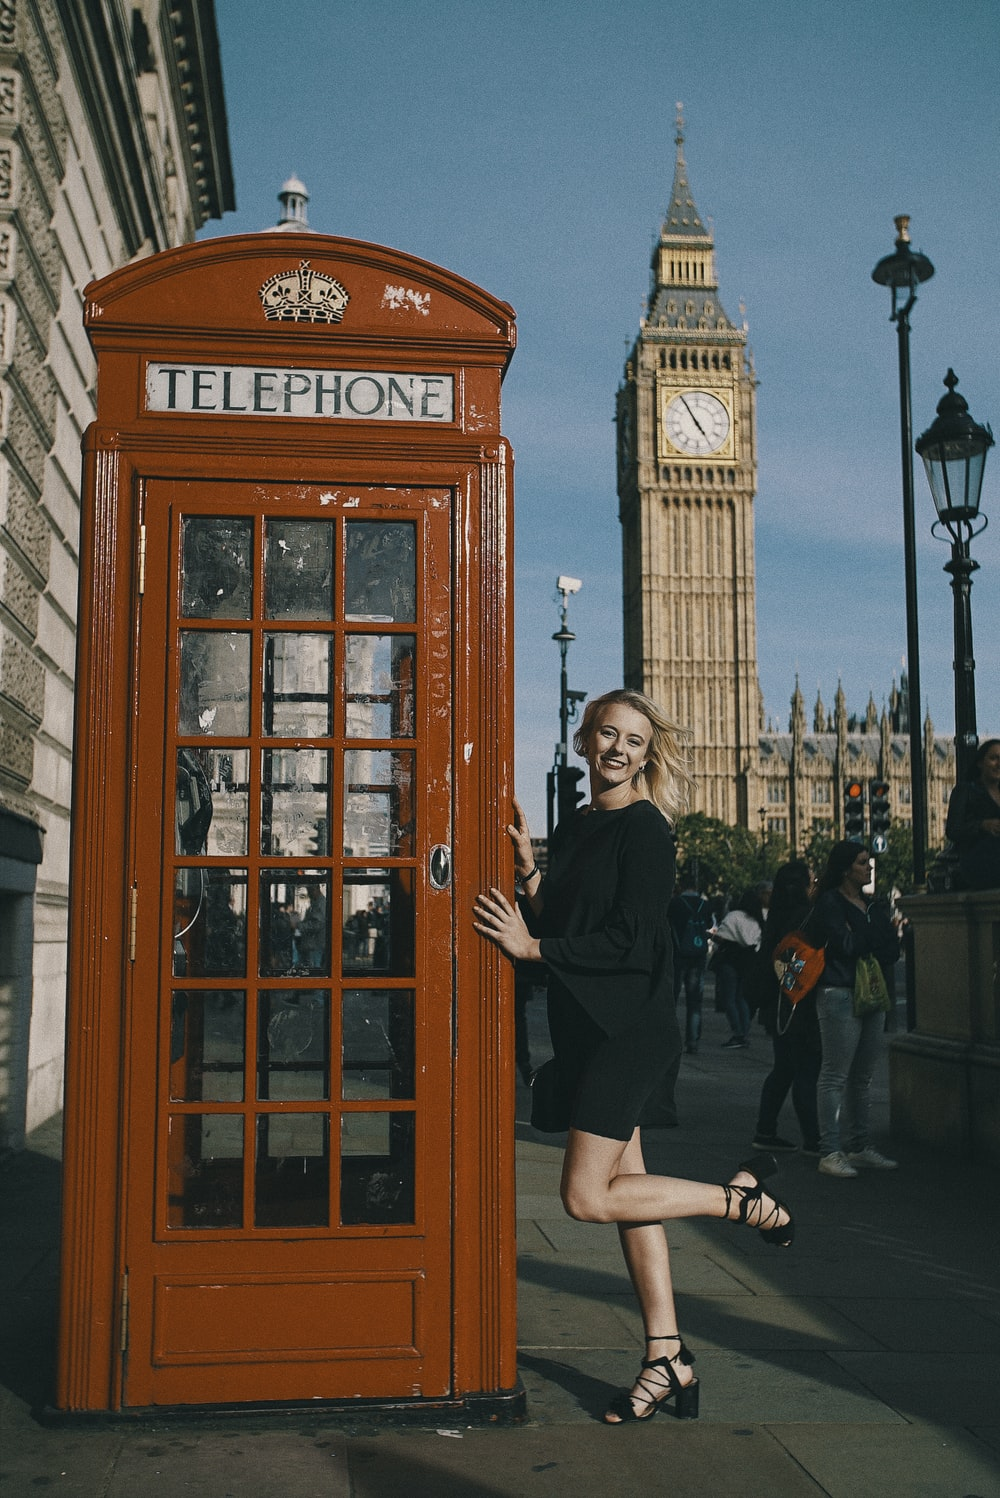 woman posing beside telephone booth with Big Ben at the back